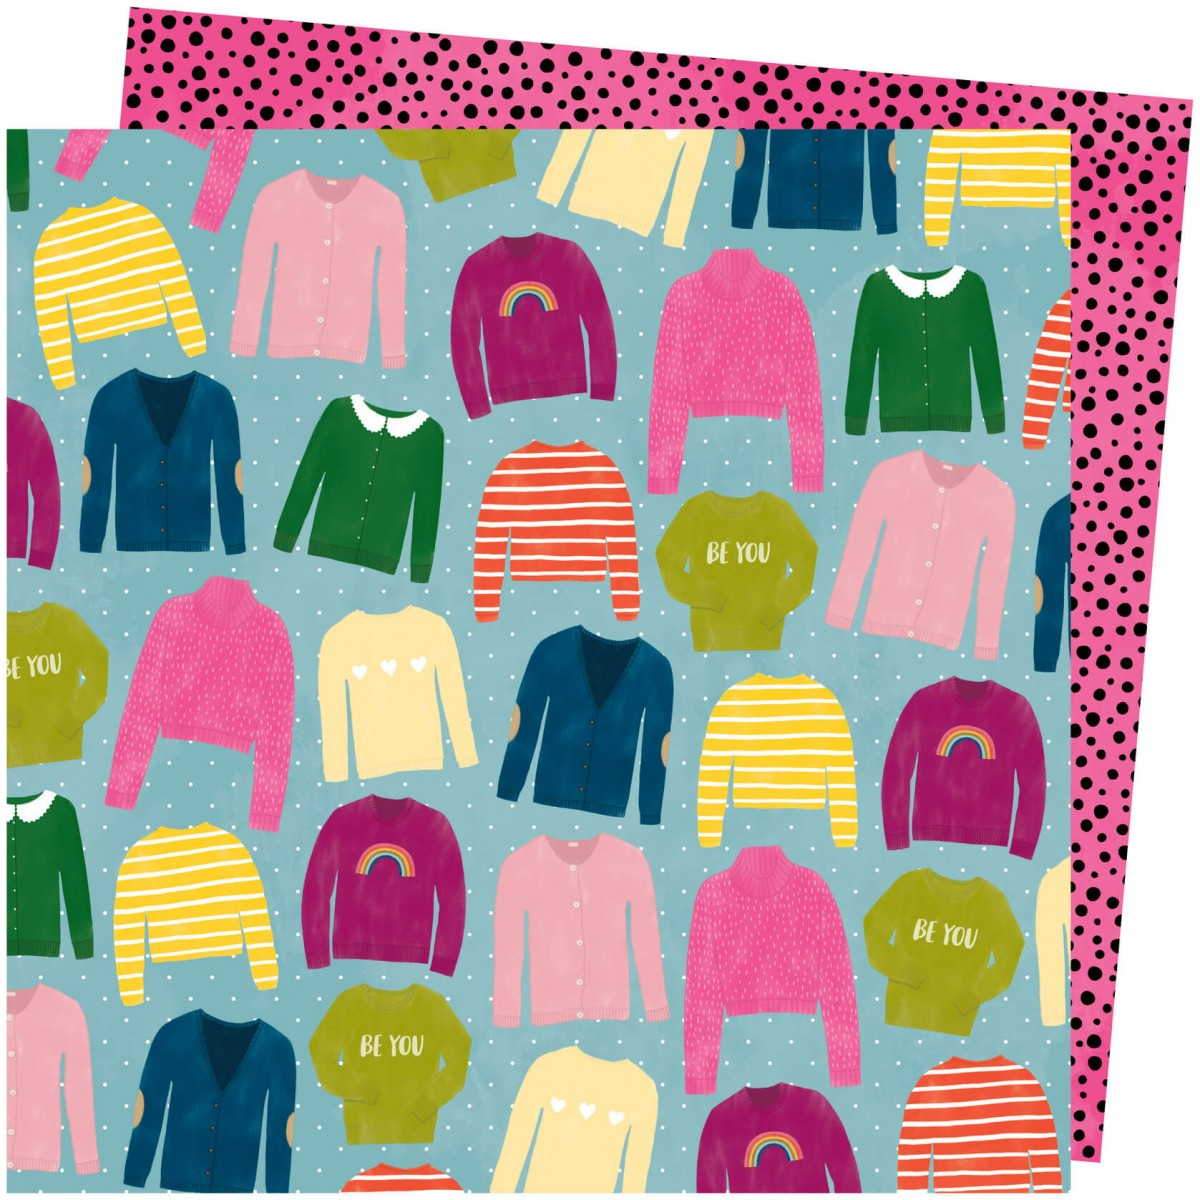 Papel Estampado Doble Cara 12x12 Slice Of Life Amy Tangerine Knit Wit